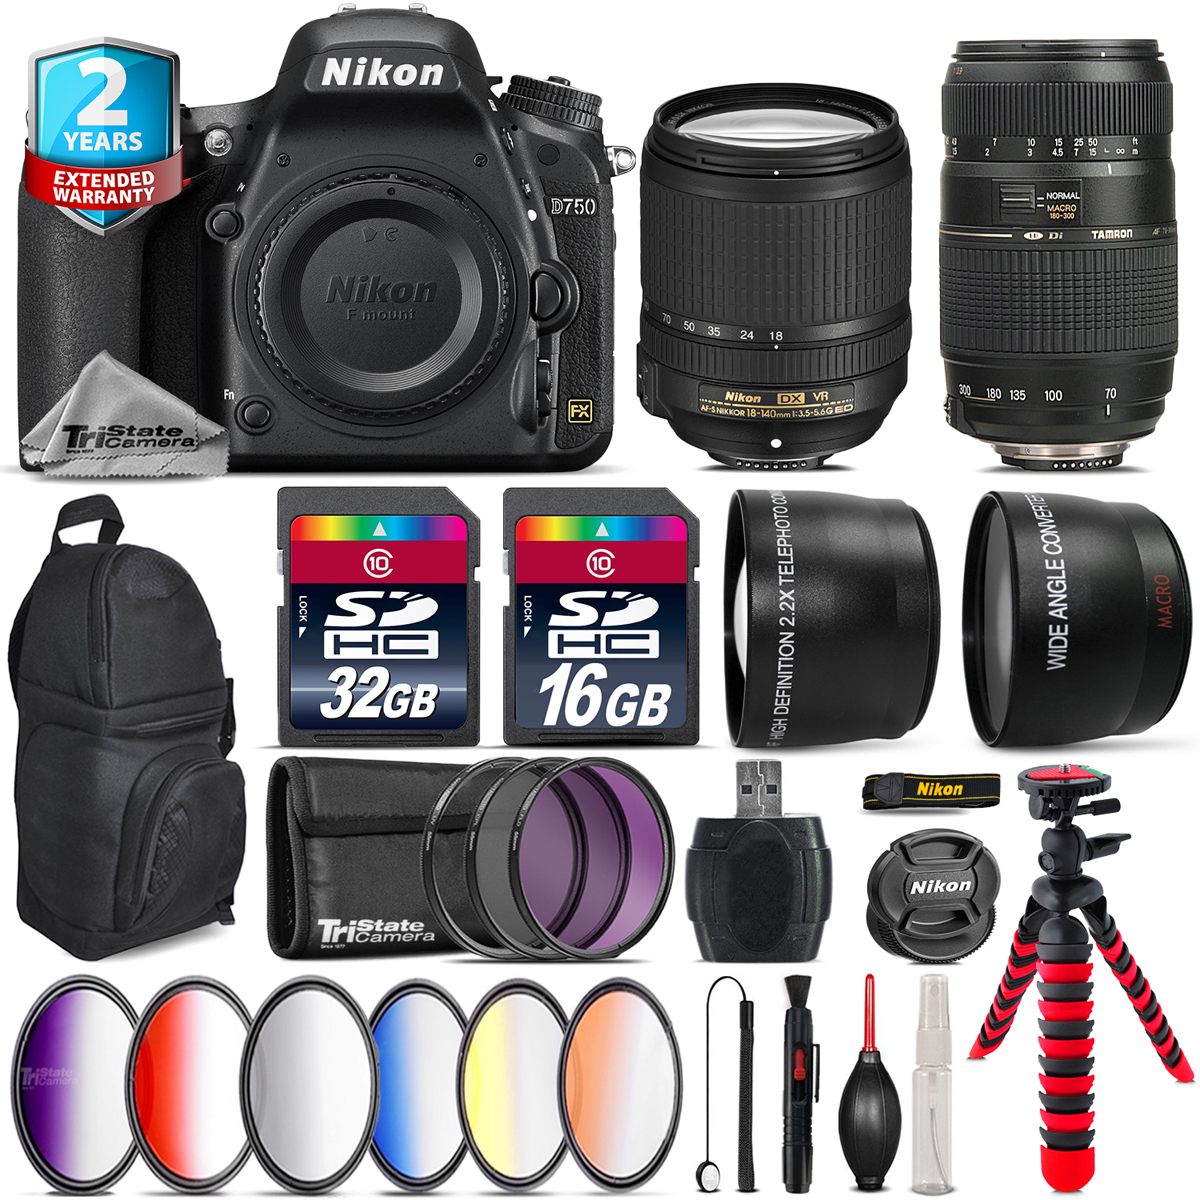 Nikon D750 DSLR Camera + AFS 18-140mm VR + Tamron 70-300mm + Backpack 48GB Kit by Tri StateCamera